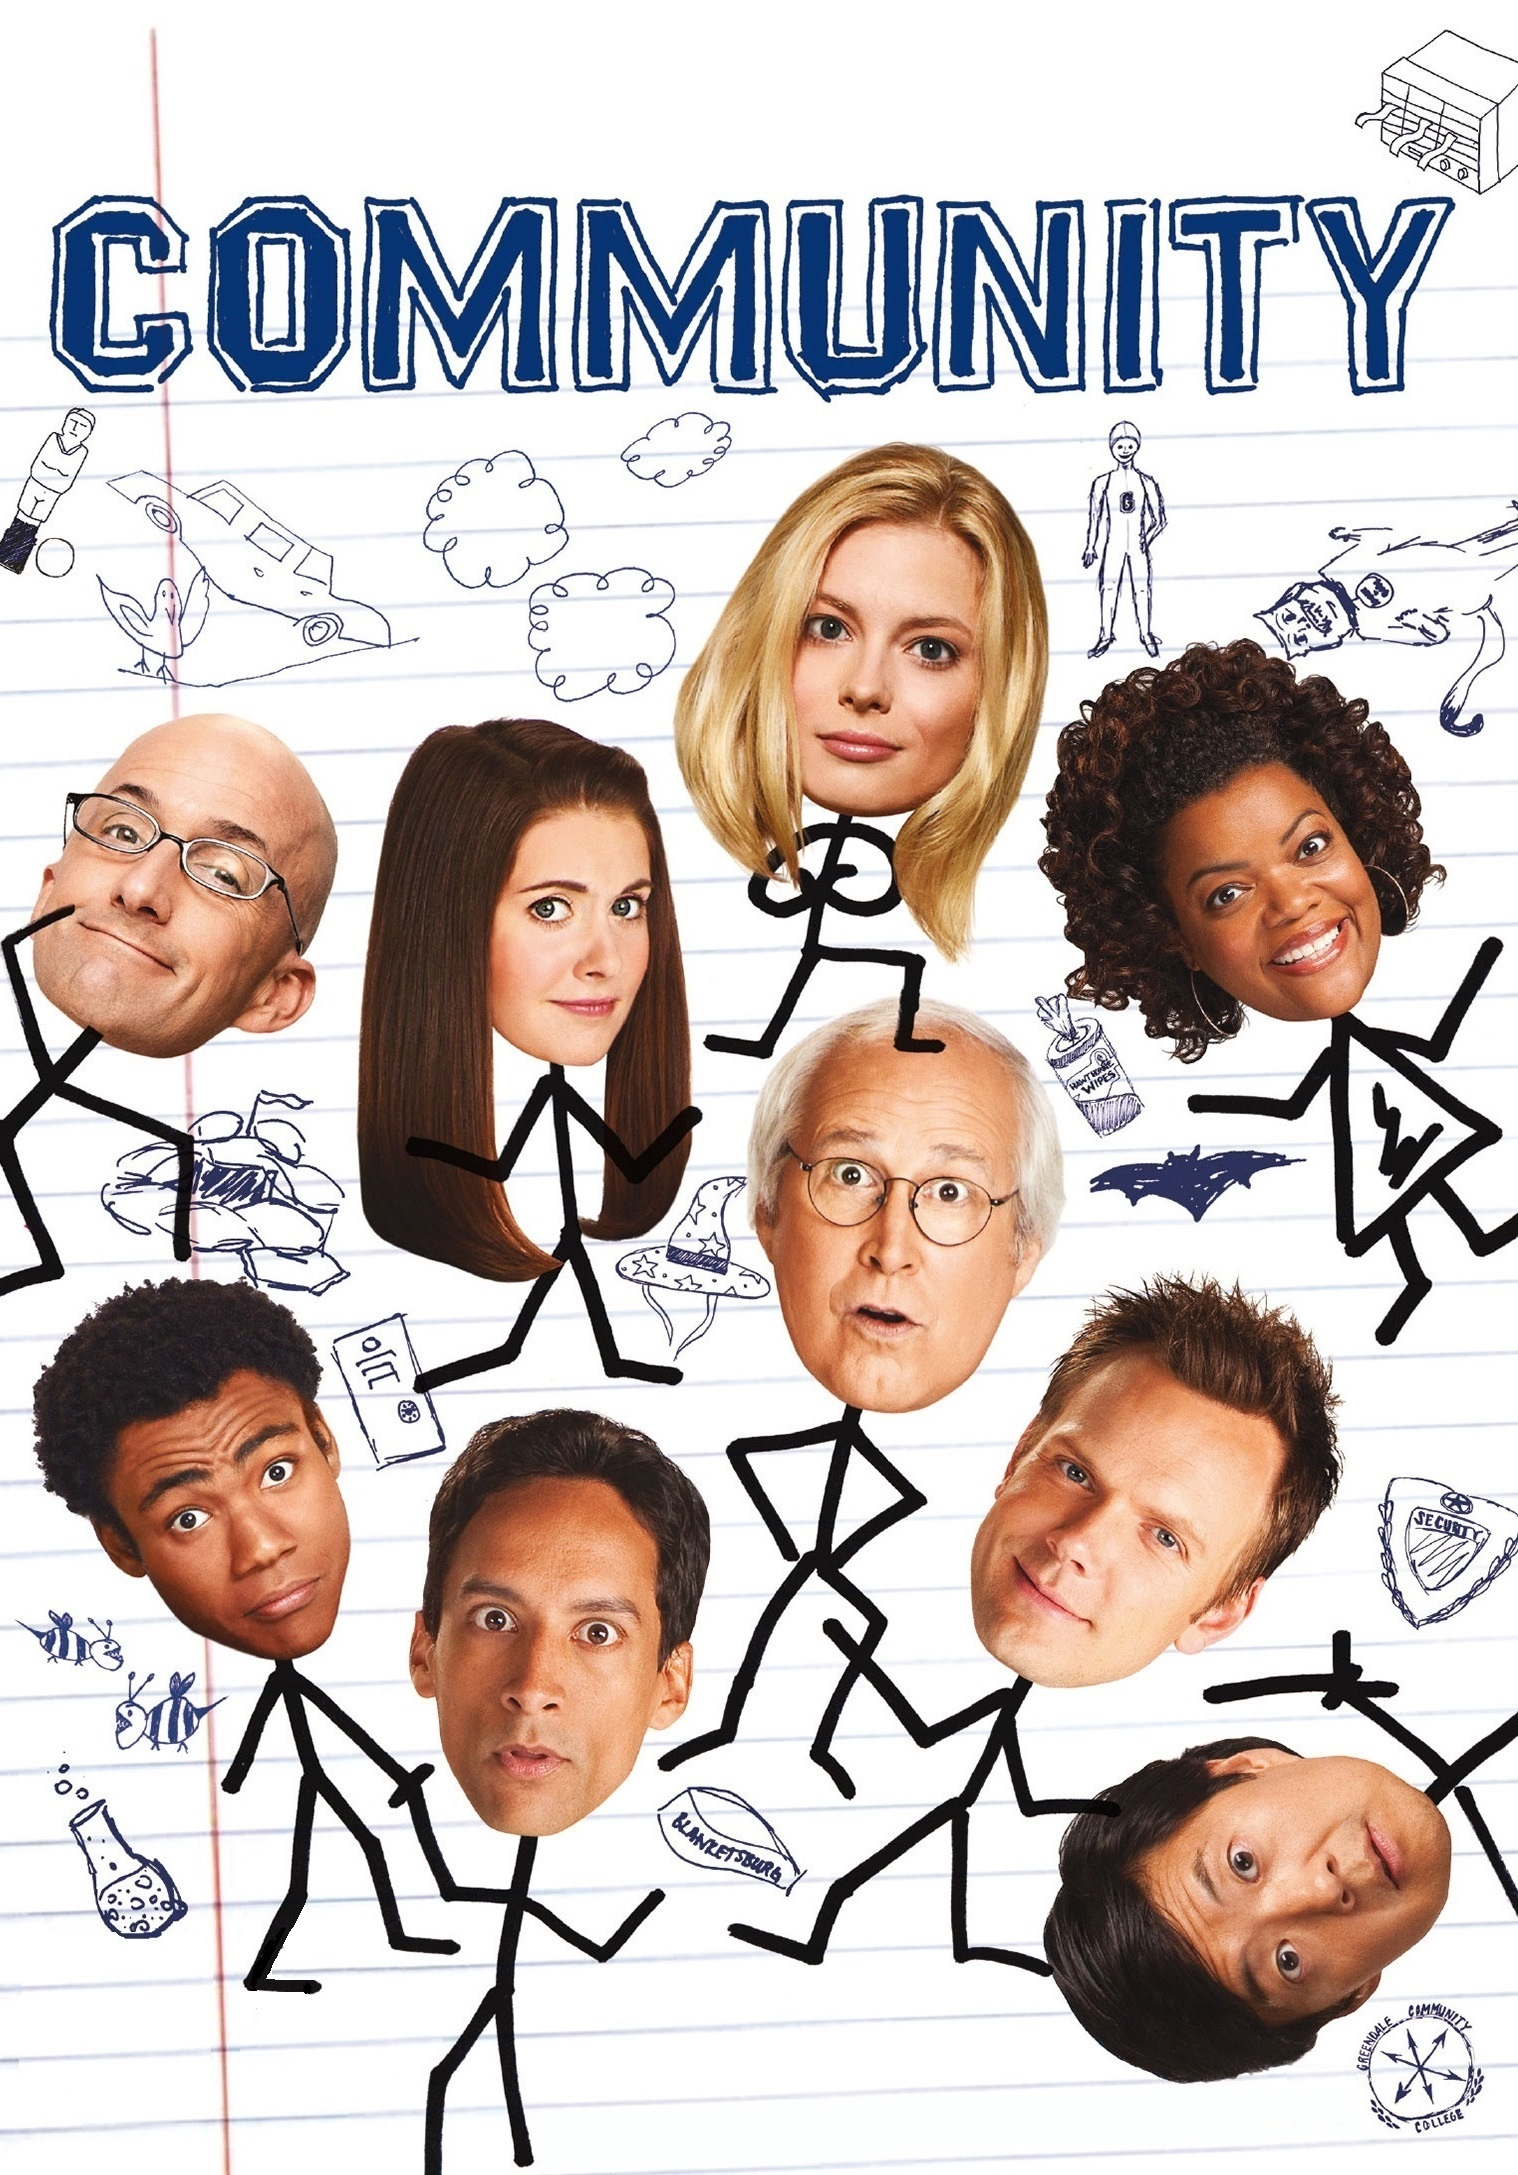 Community (TV Series 2009–2015) - IMDb